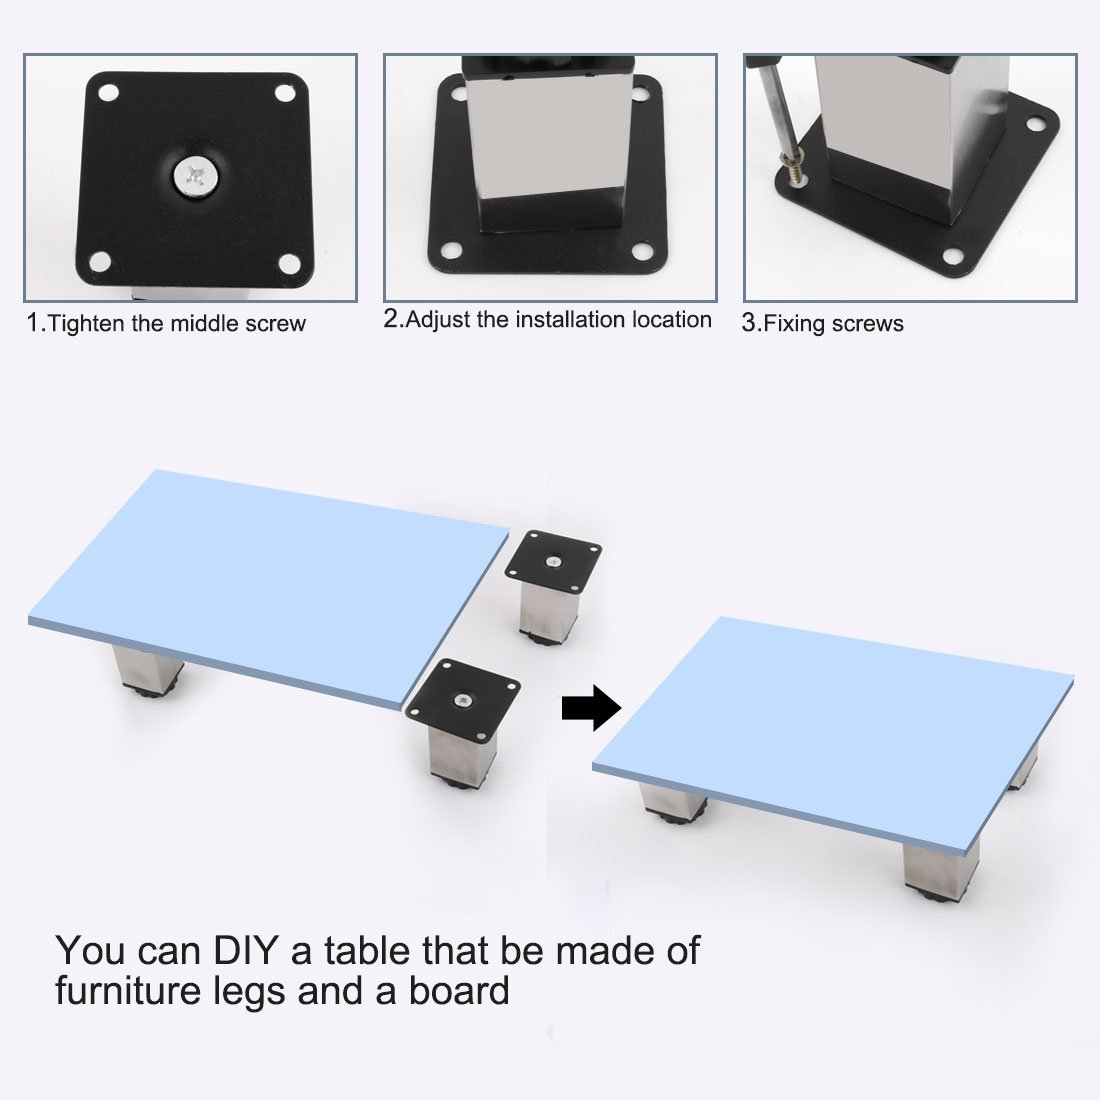 uxcellAluminum Alloy 4pcs Adjustable Furniture Cabinet Sofa Desk Table Bed Legs Feet Height(Total:100-118mm) x 38mm Width a18011600ux0045